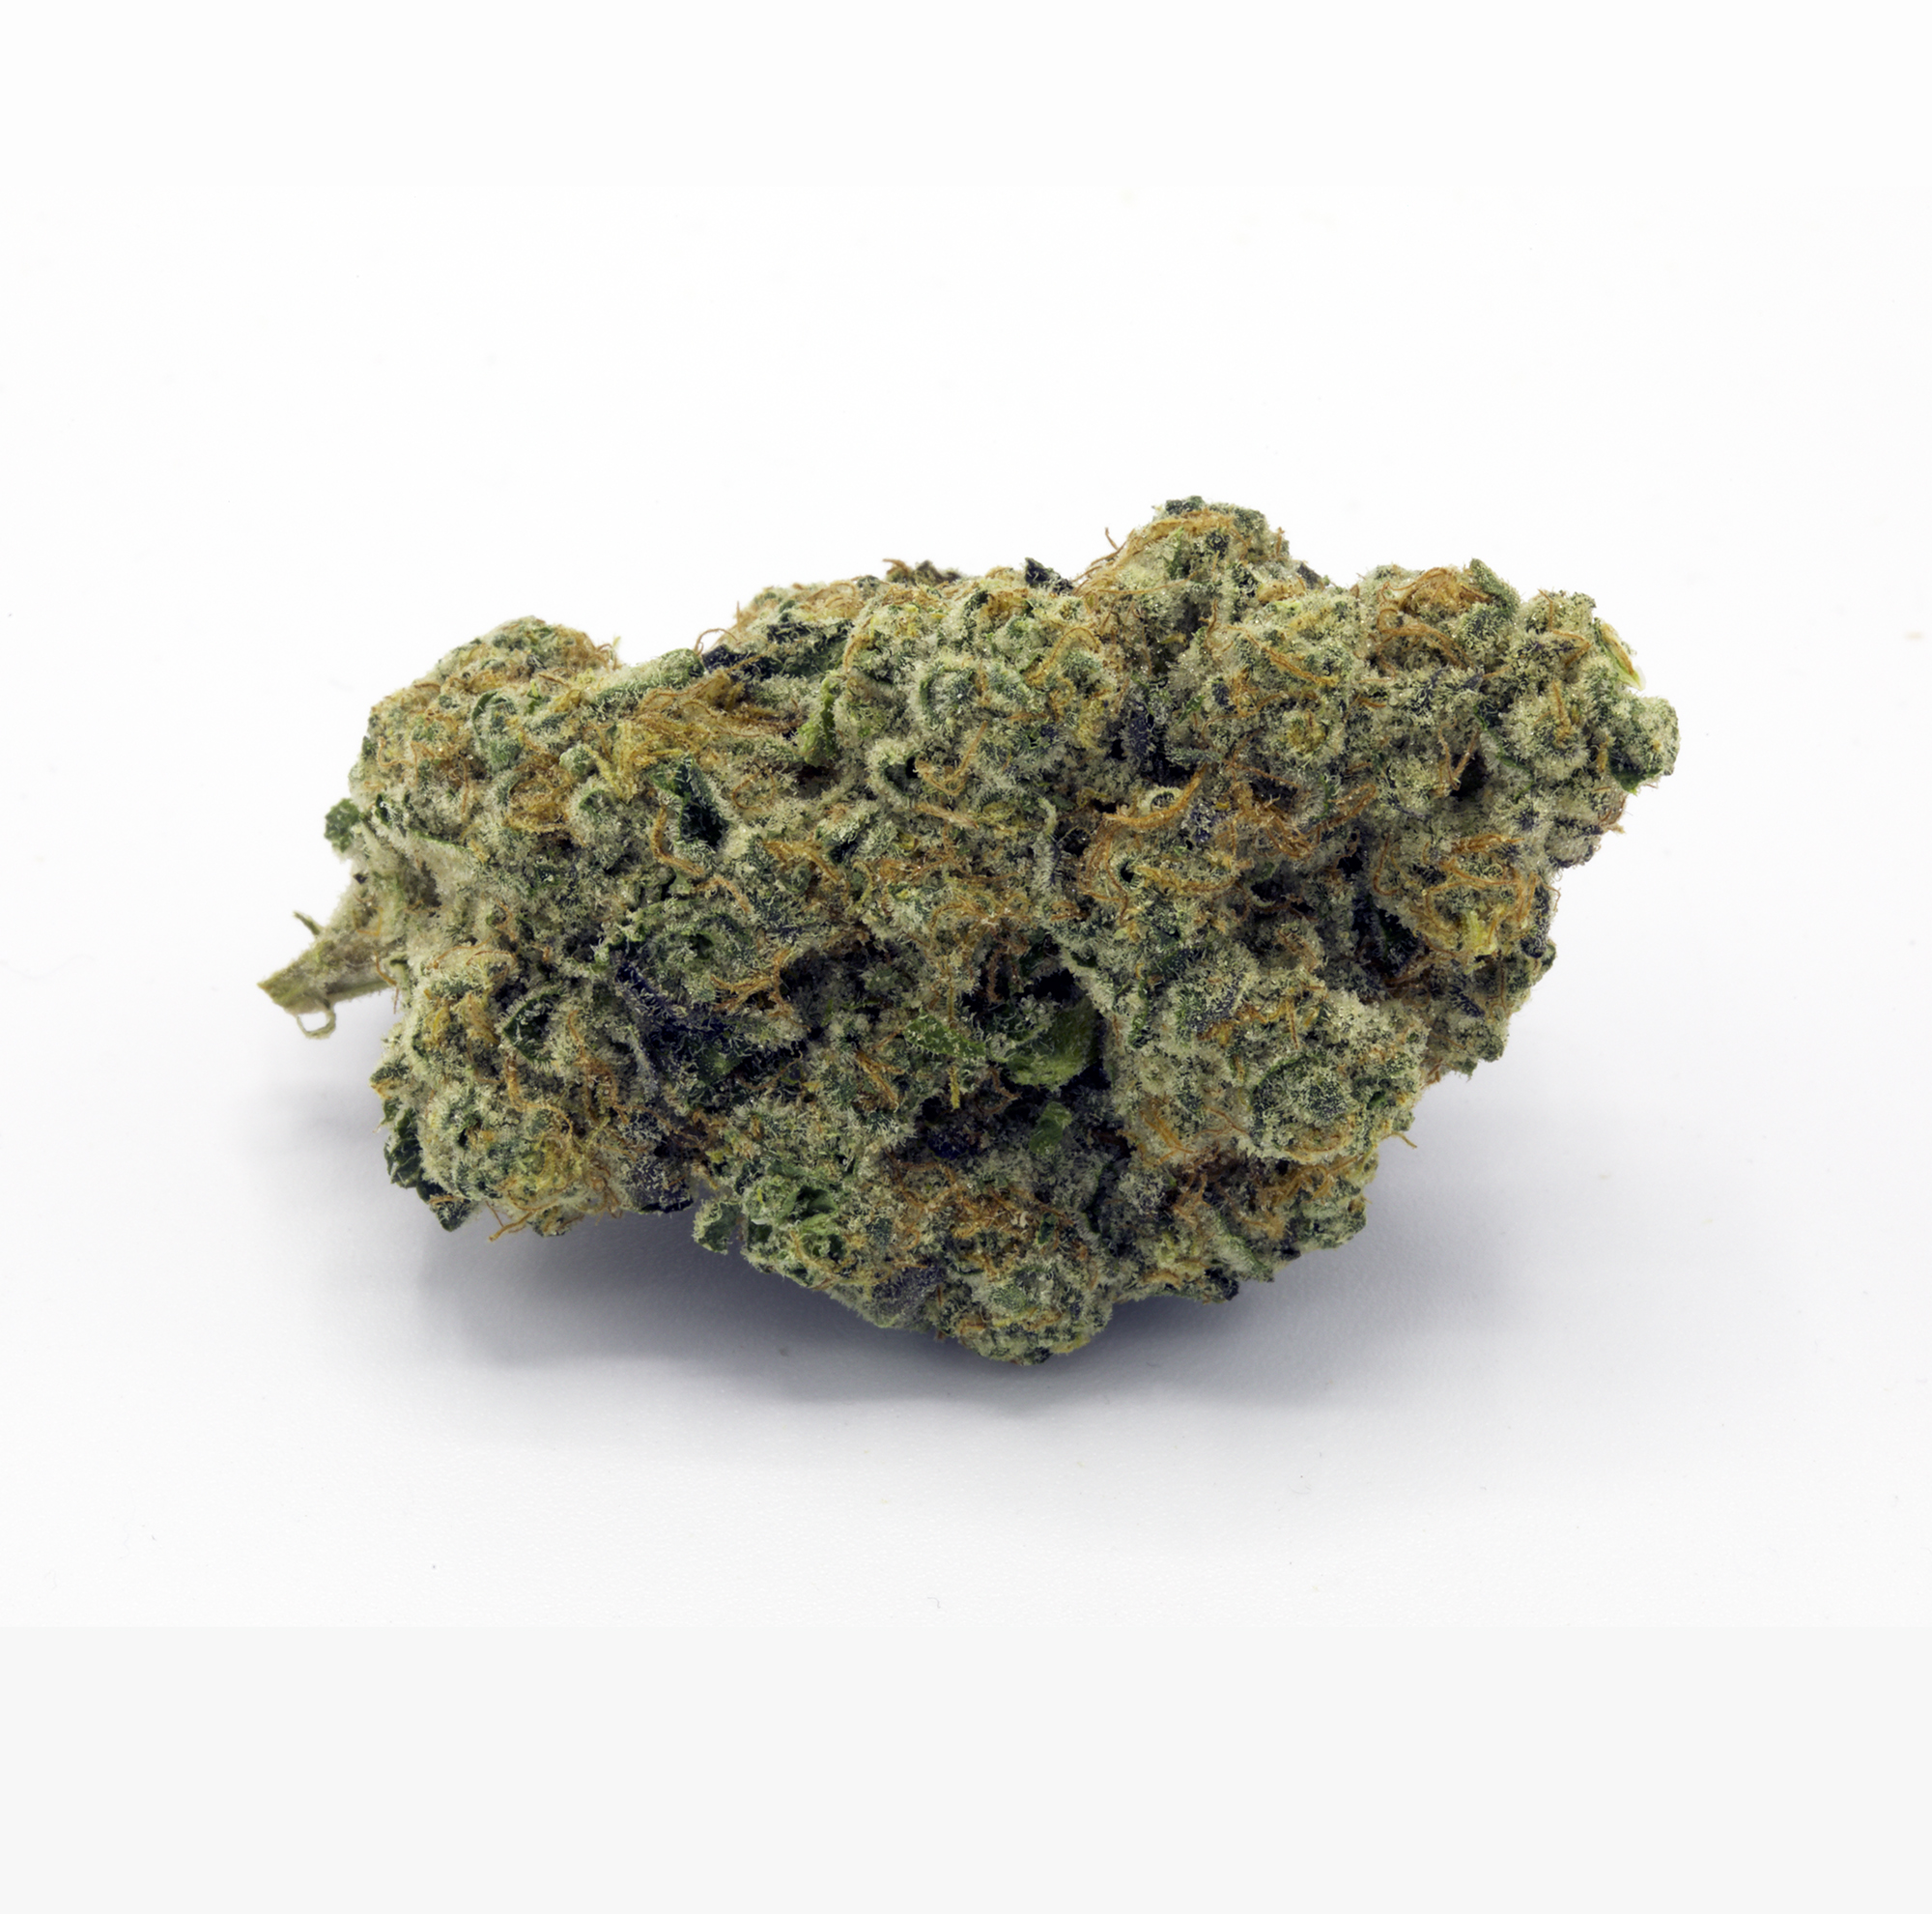 wedding cake strain weedmaps weddingcake weedmaps wbg reef dispensaries 25760